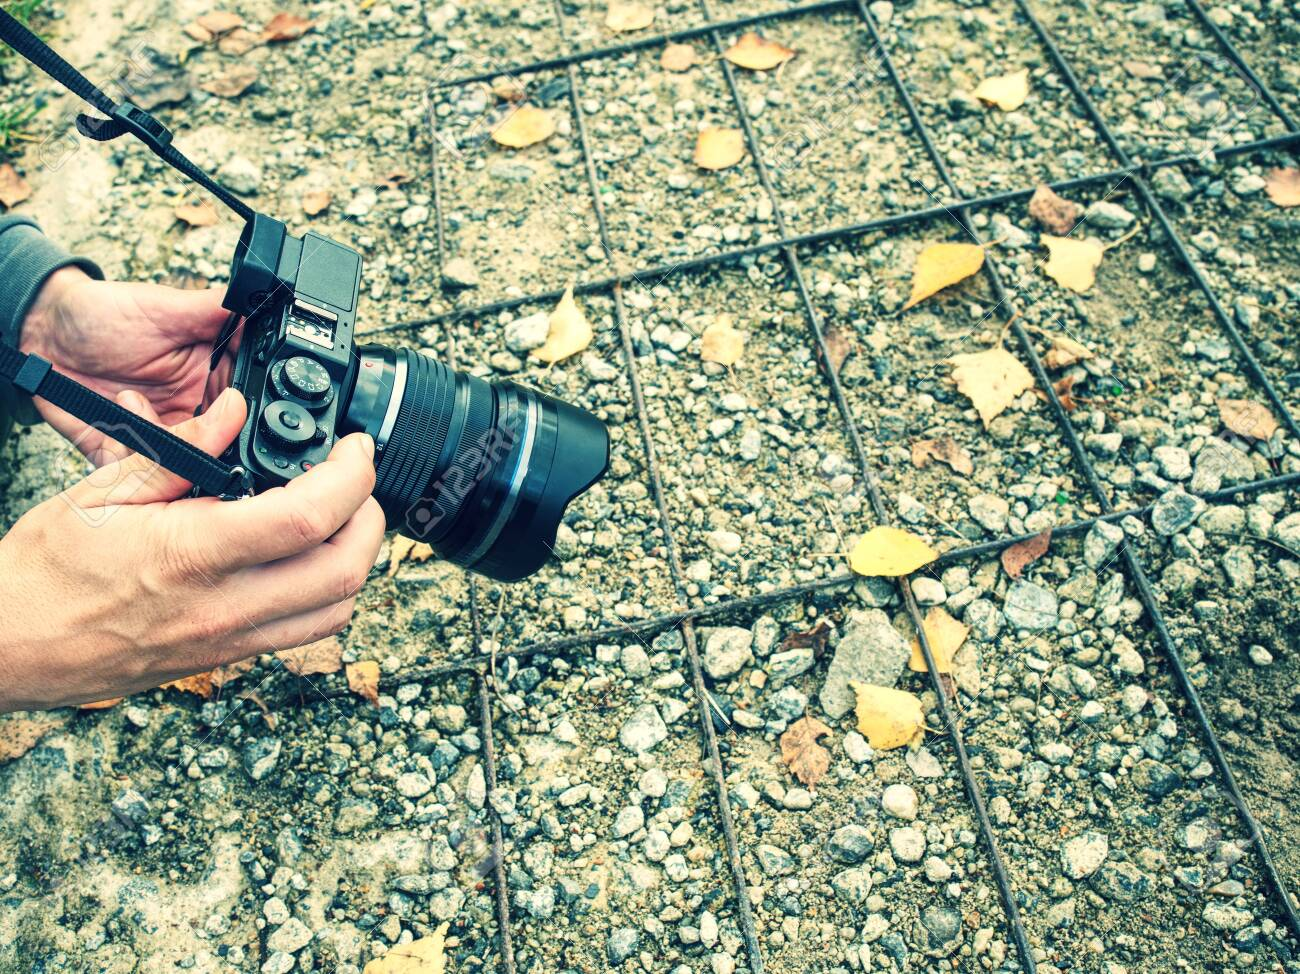 Woman taking pictures with a mirrorless camera in forest in the fall season. Some colorful leaves fallen on the ground in front of camera lens - 132900675